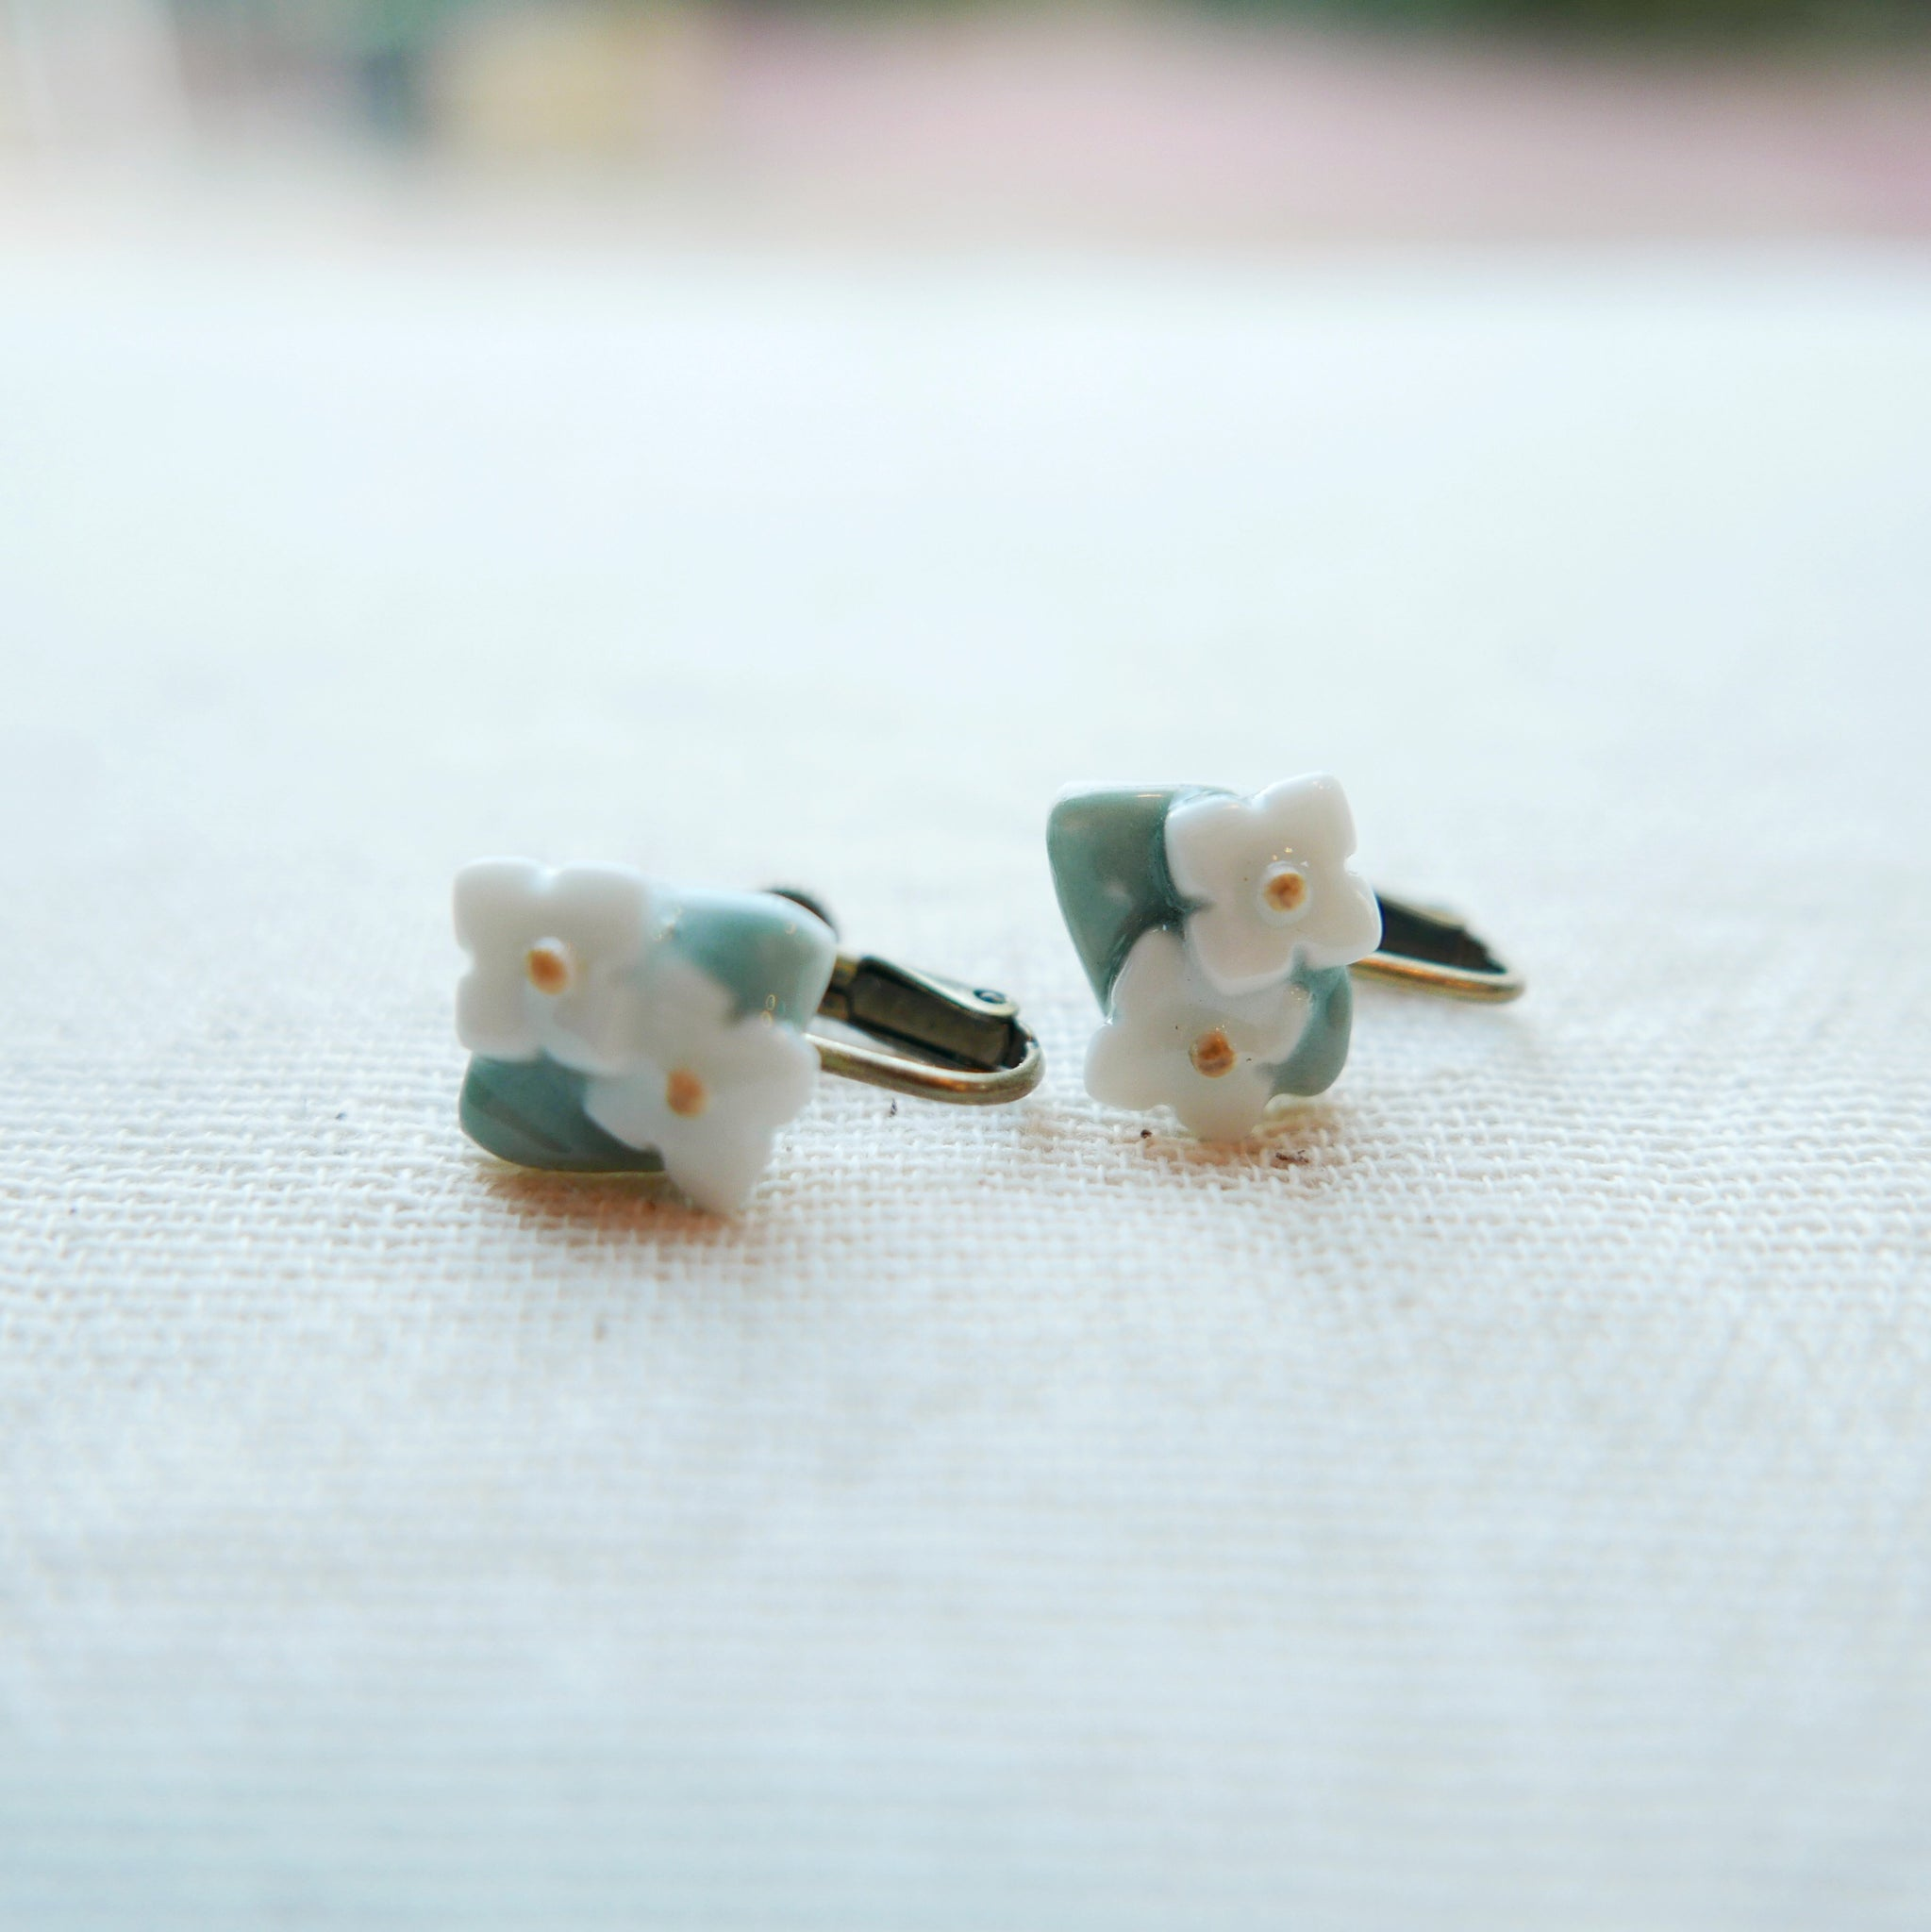 Lillies with Leaves Ceramic Earrings